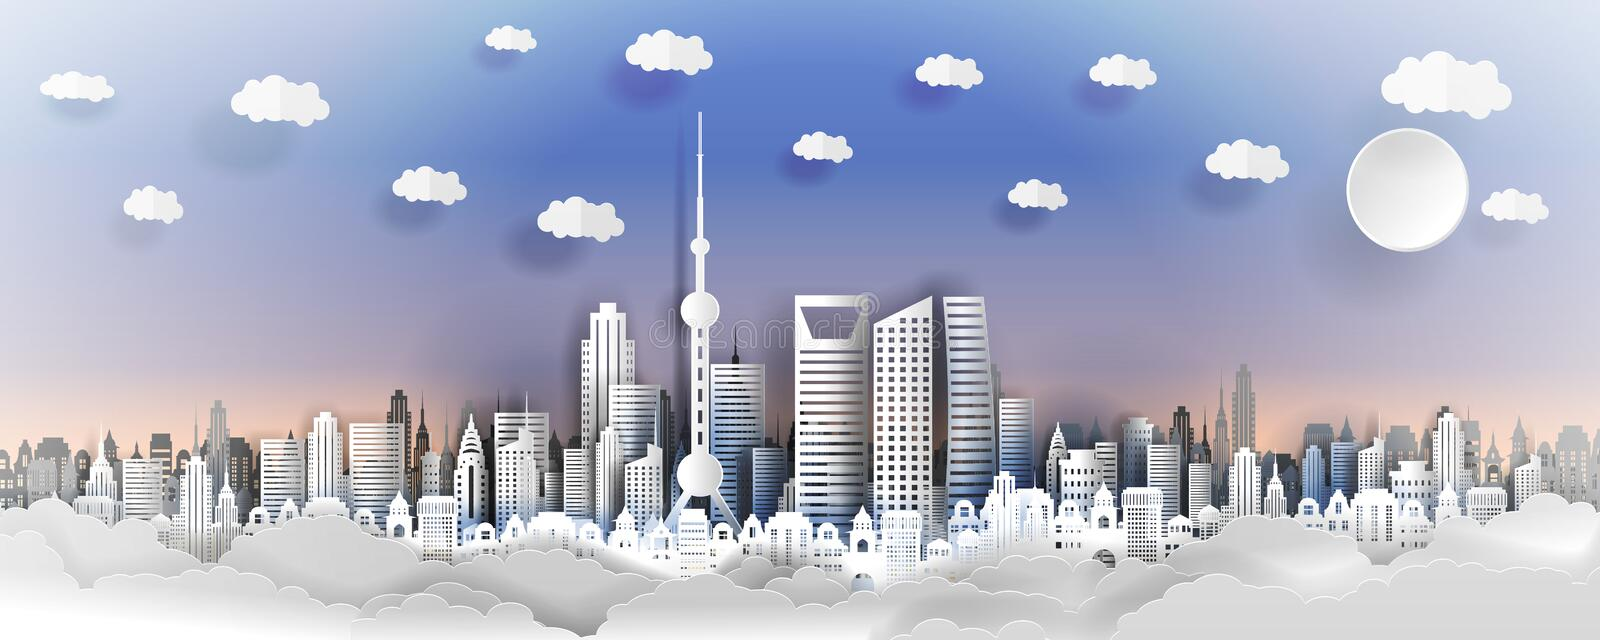 Shanhai city concept, China. Paper art city on back with buildings, towers, clouds. royalty free illustration